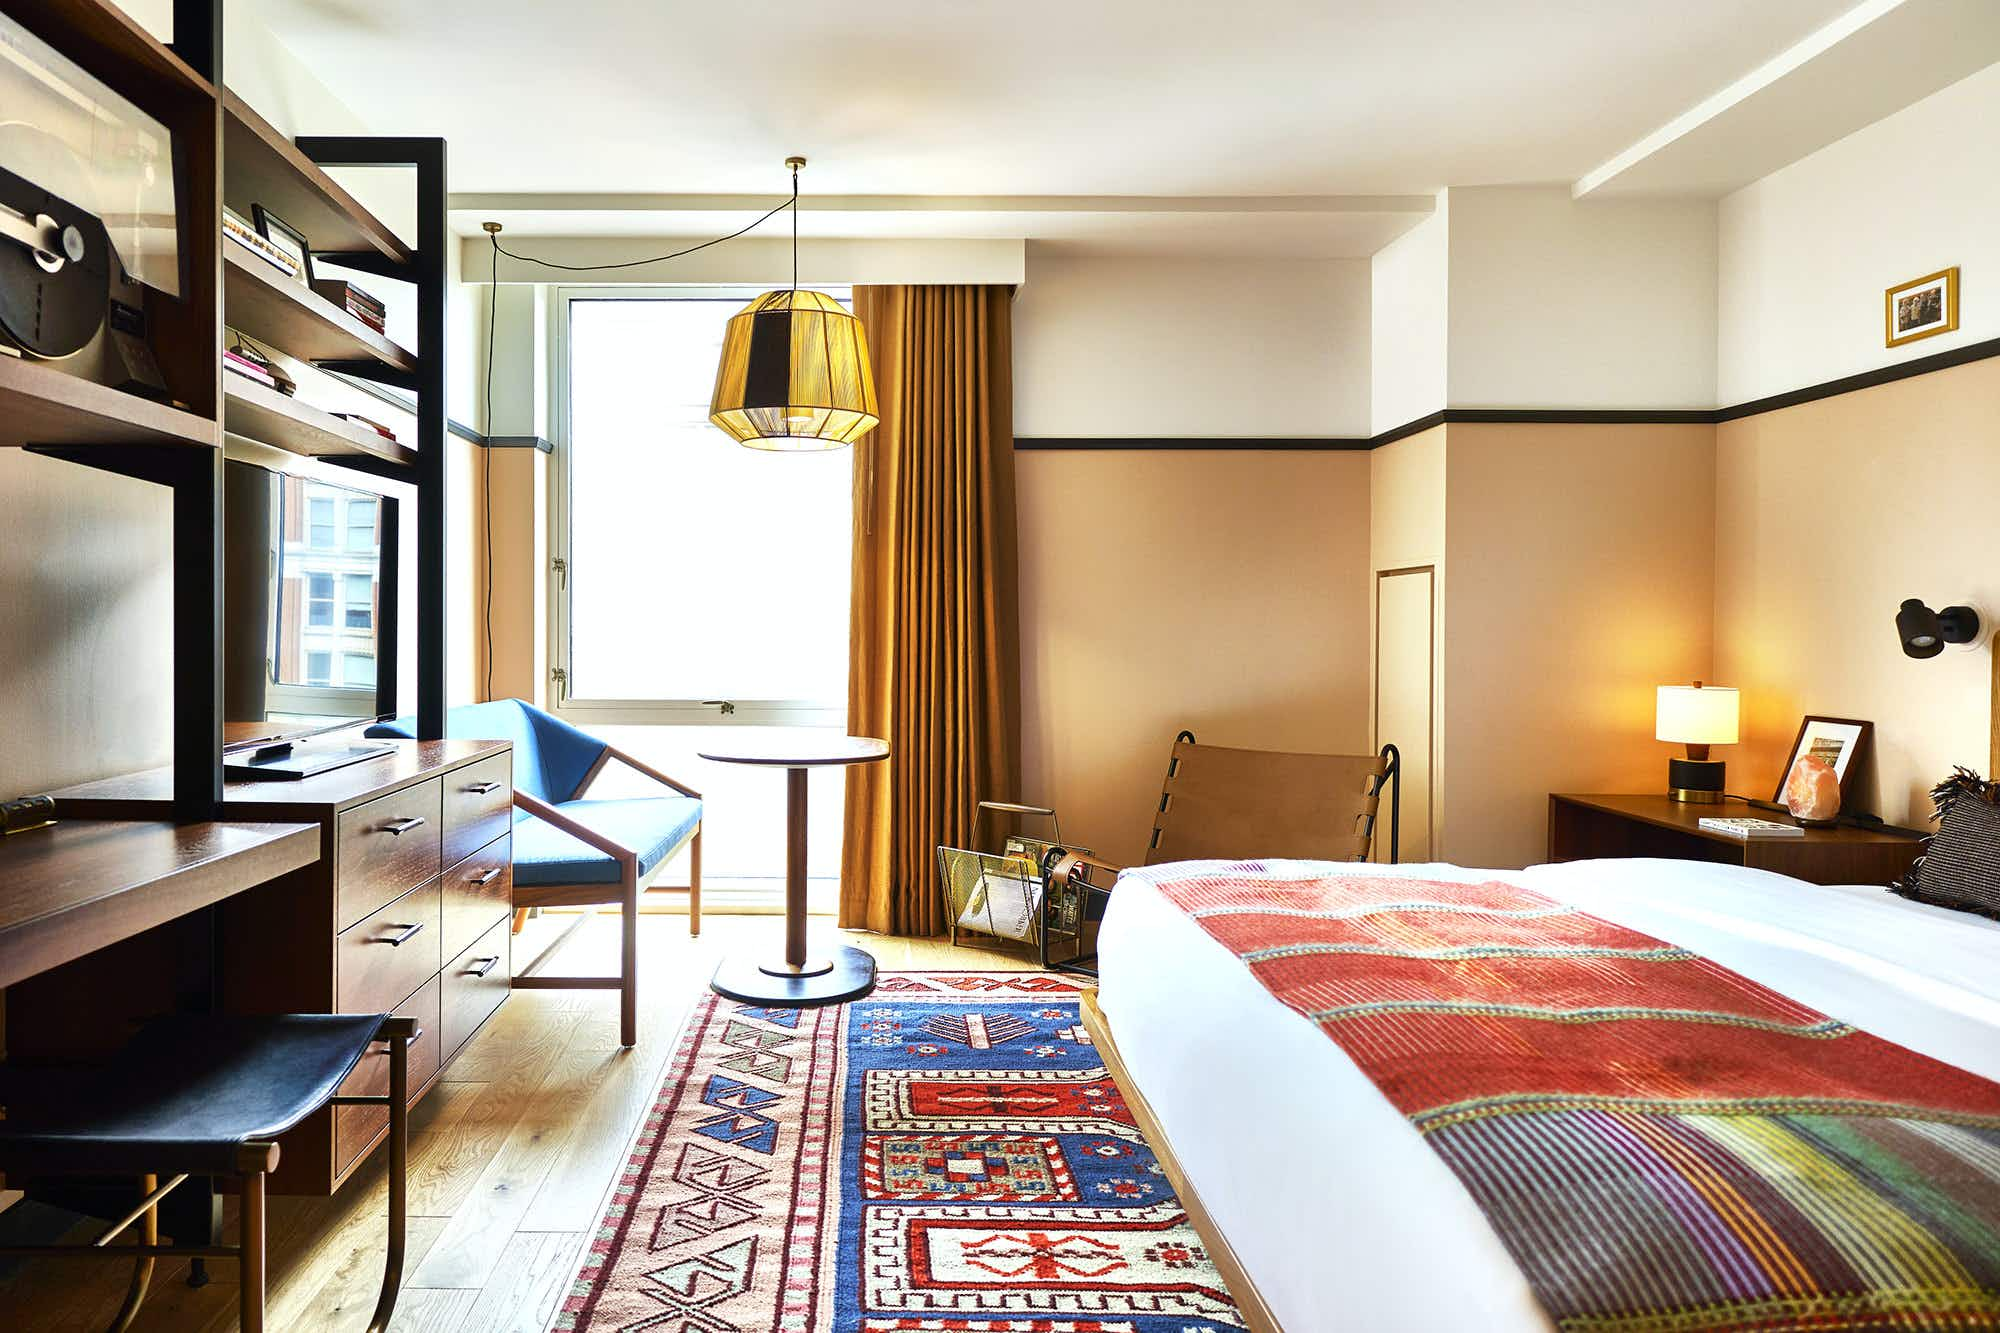 The world's first activist hotel is open for business in Washington DC